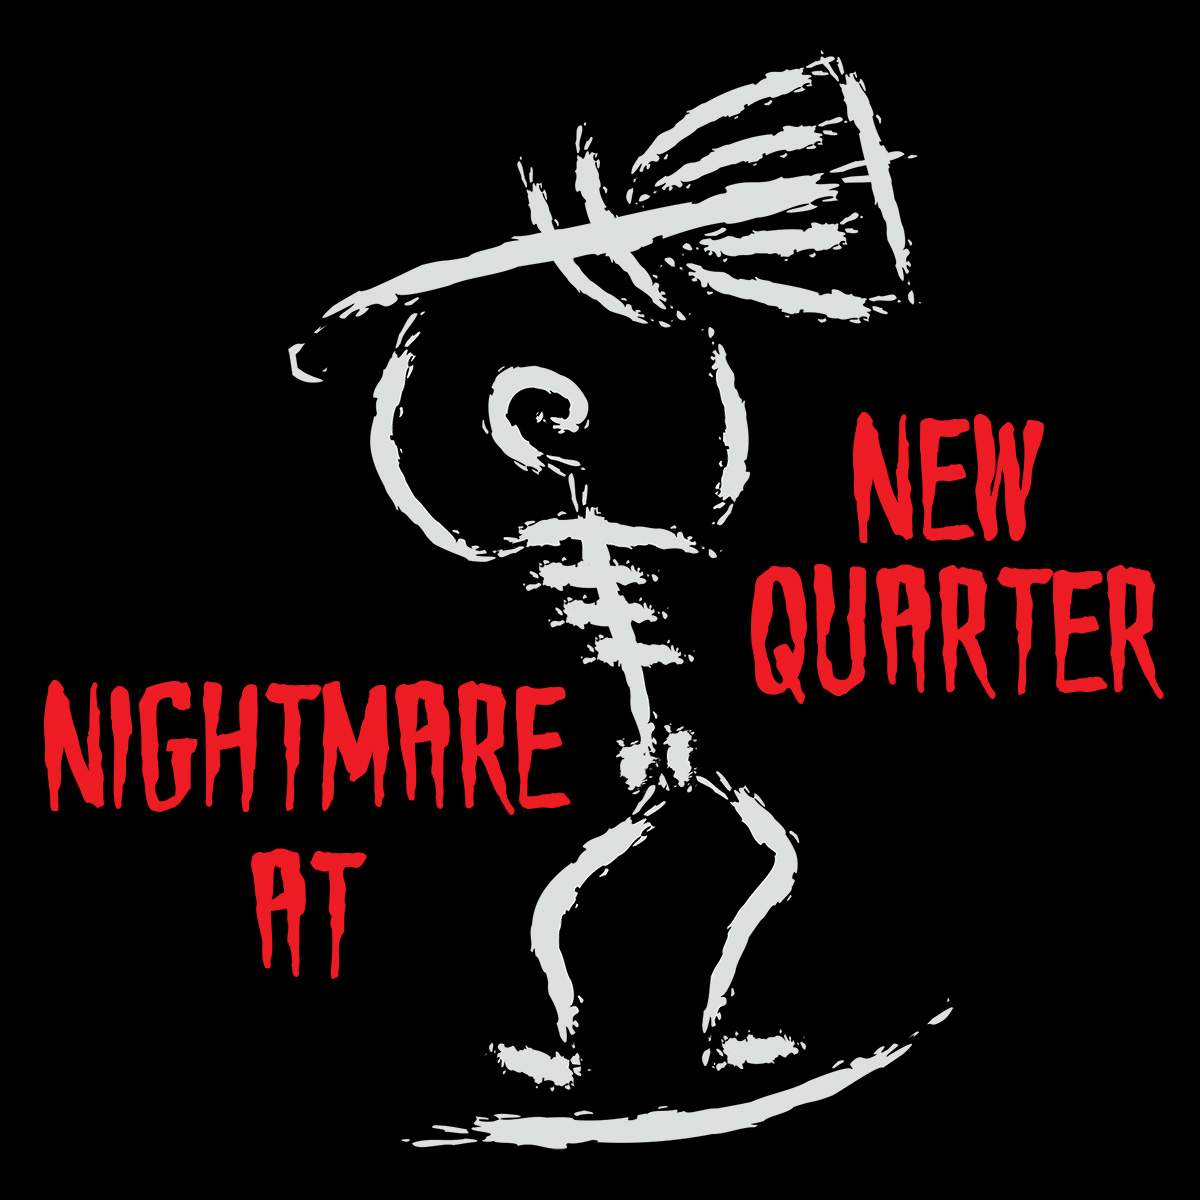 Nightmare at New Quarter